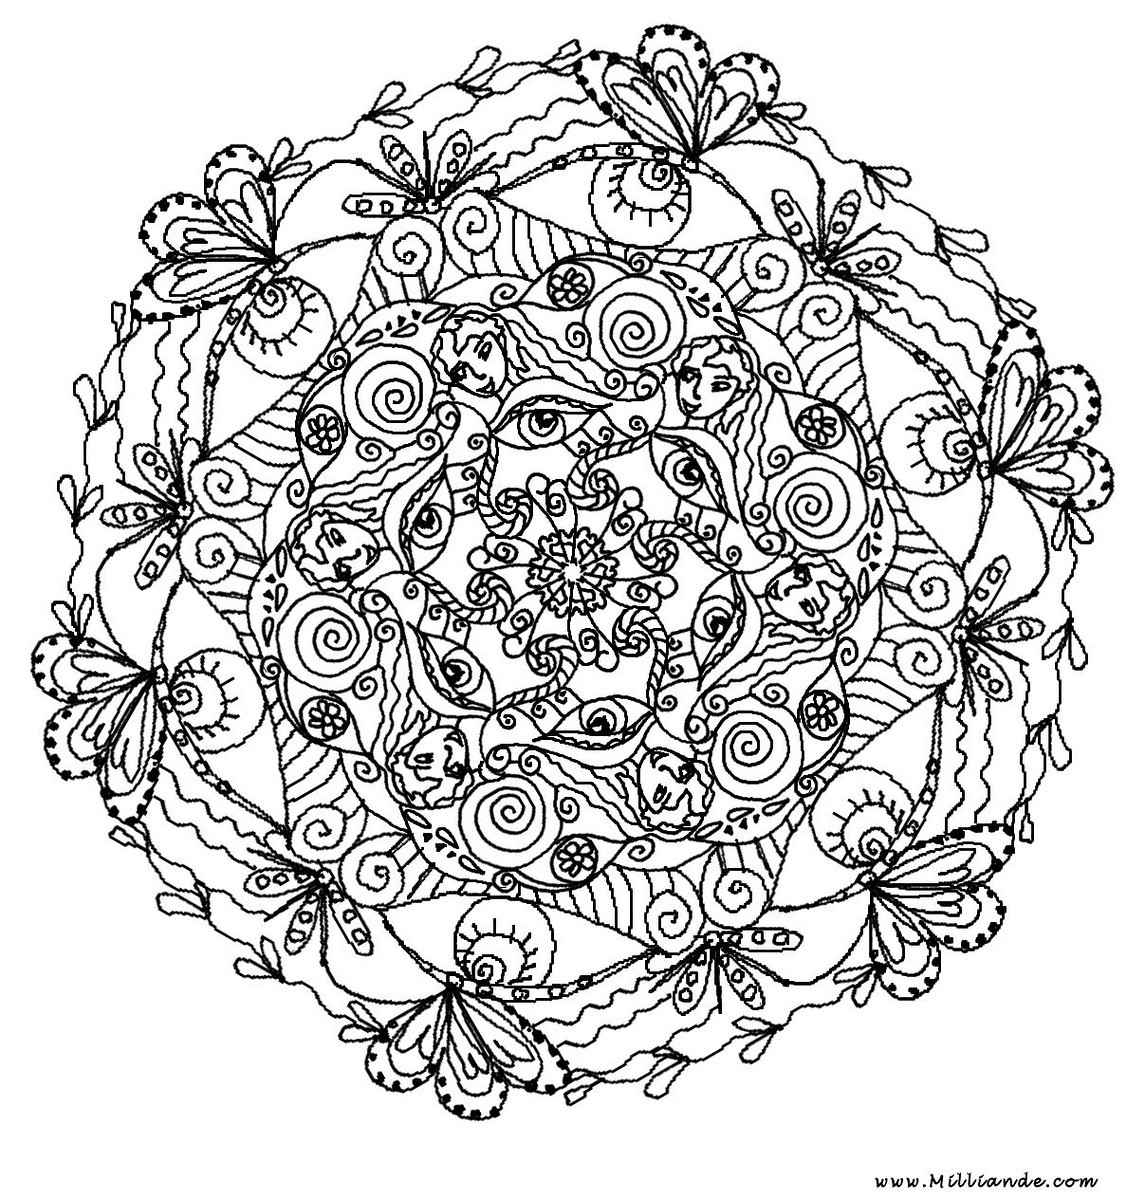 - Advanced Mandala Coloring Pages